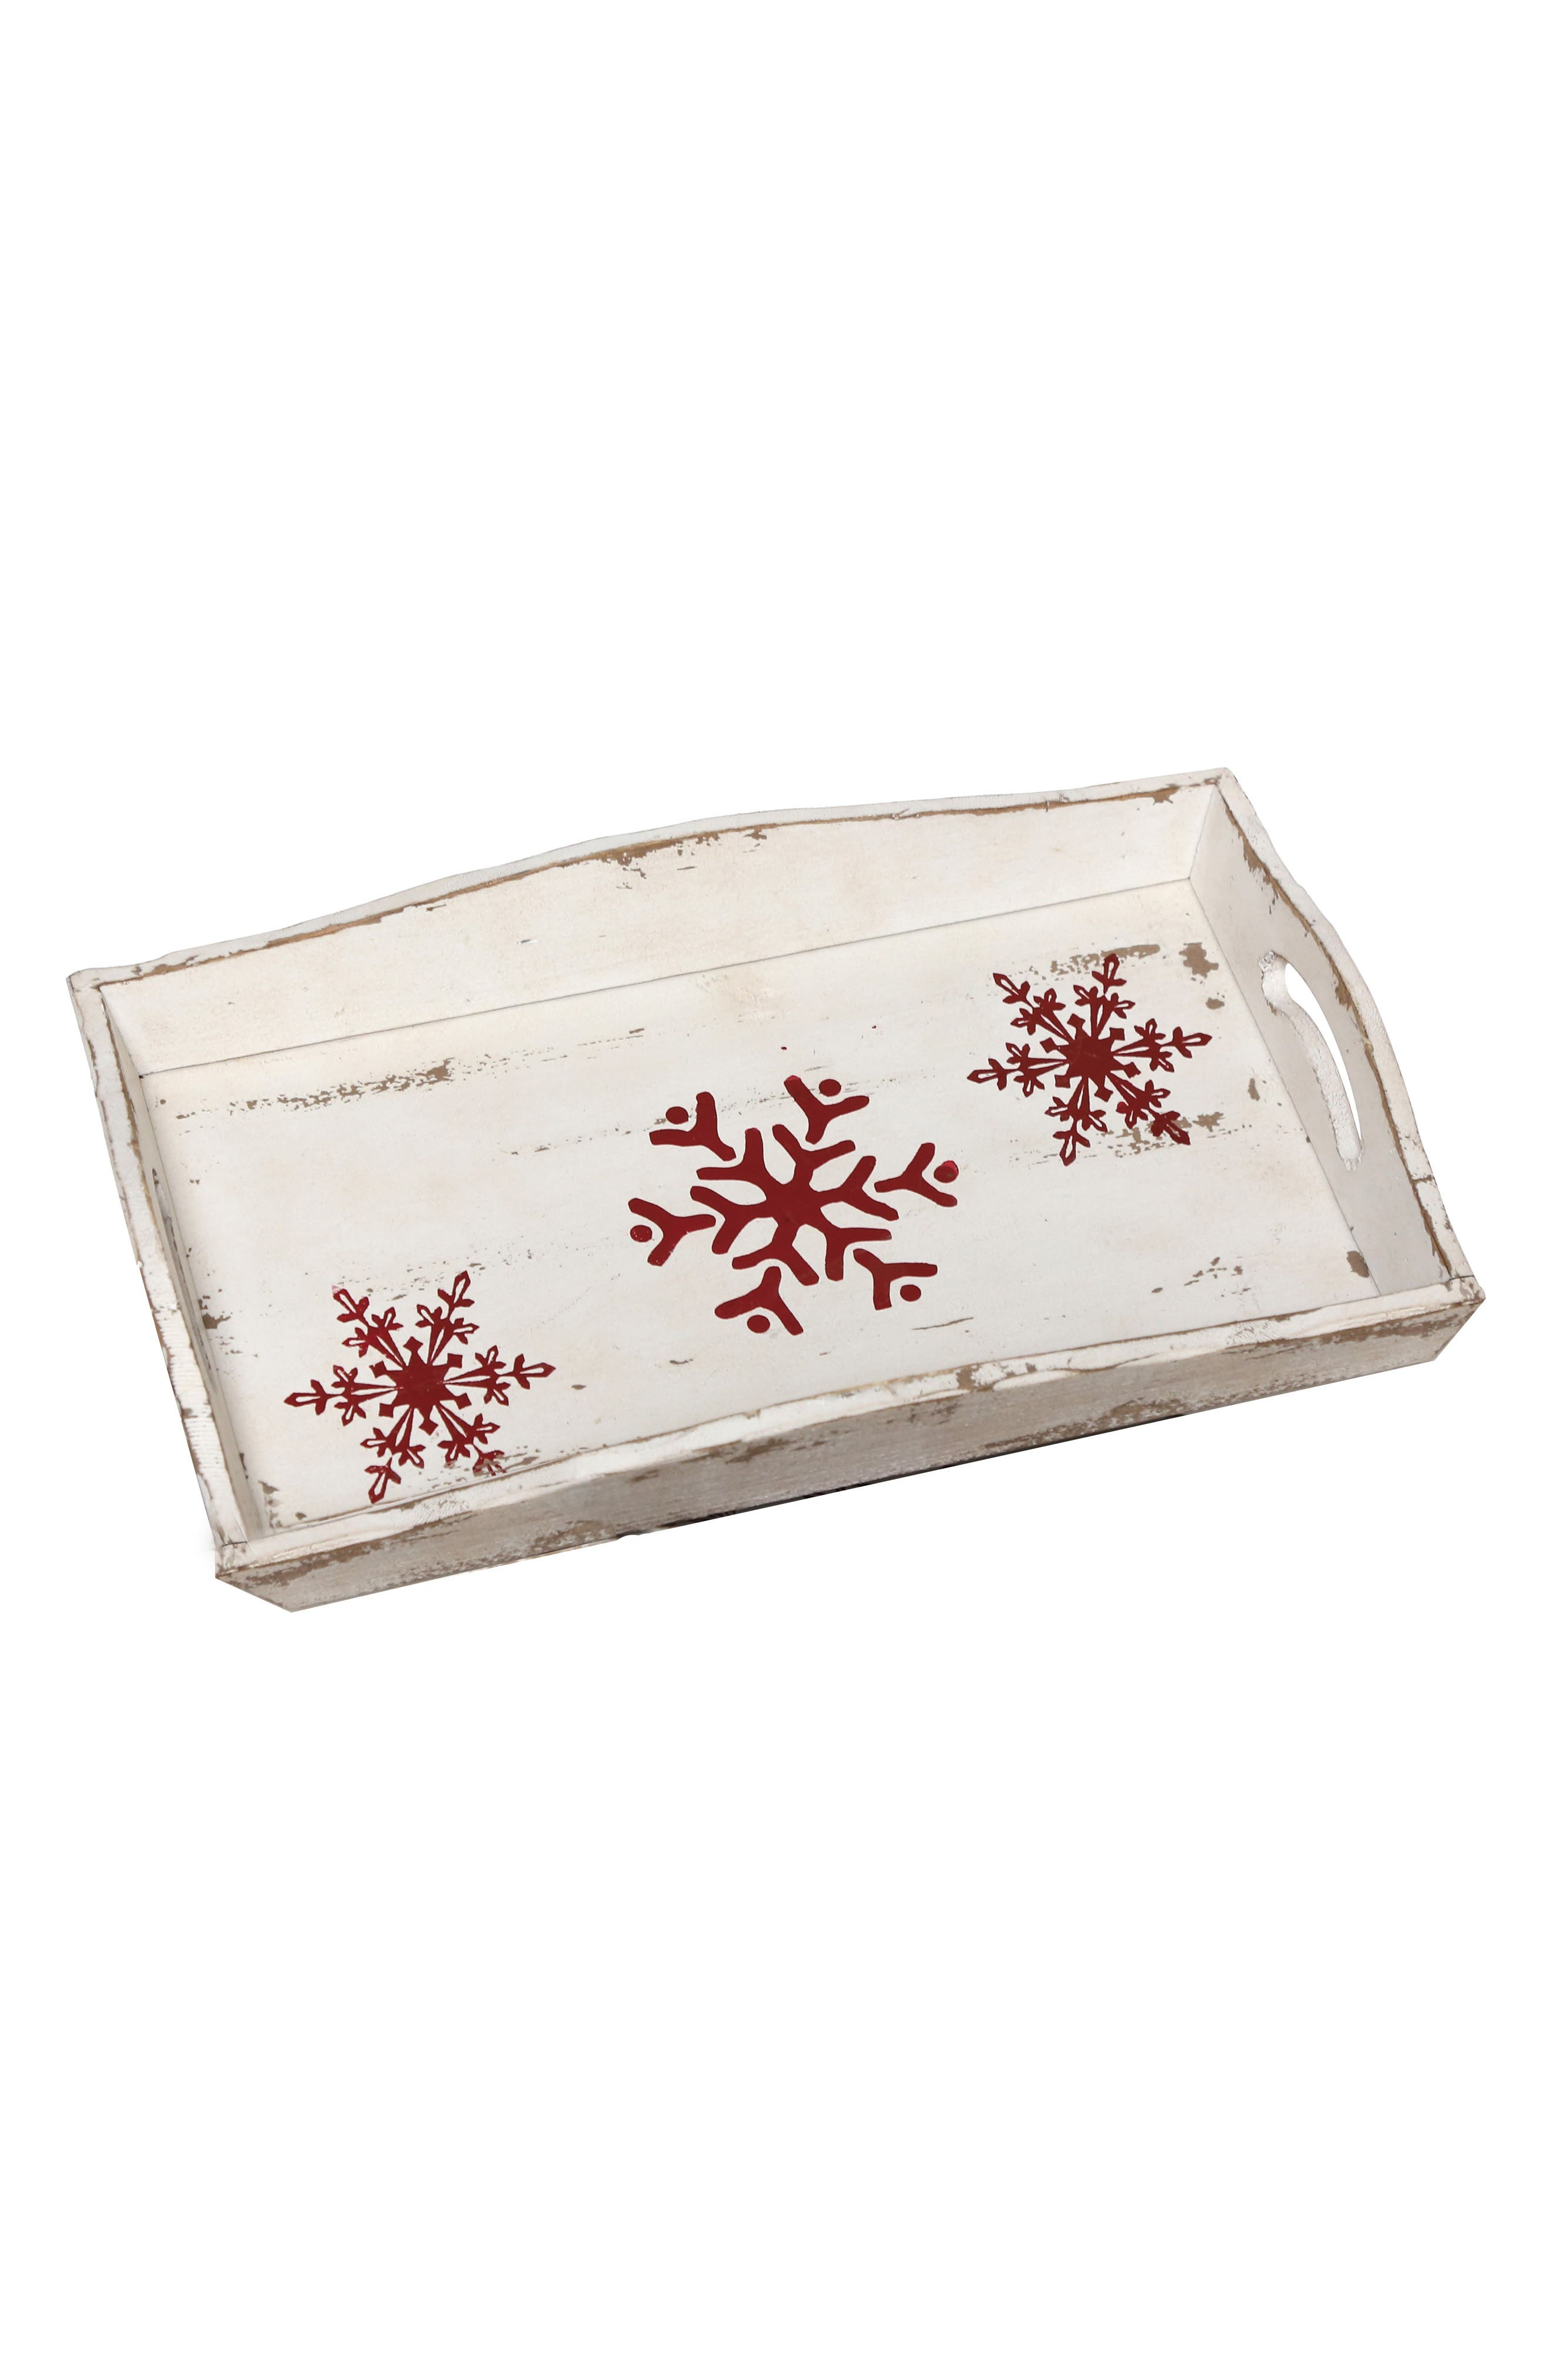 Snowflake Wood Tray,                         Main,                         color, Red